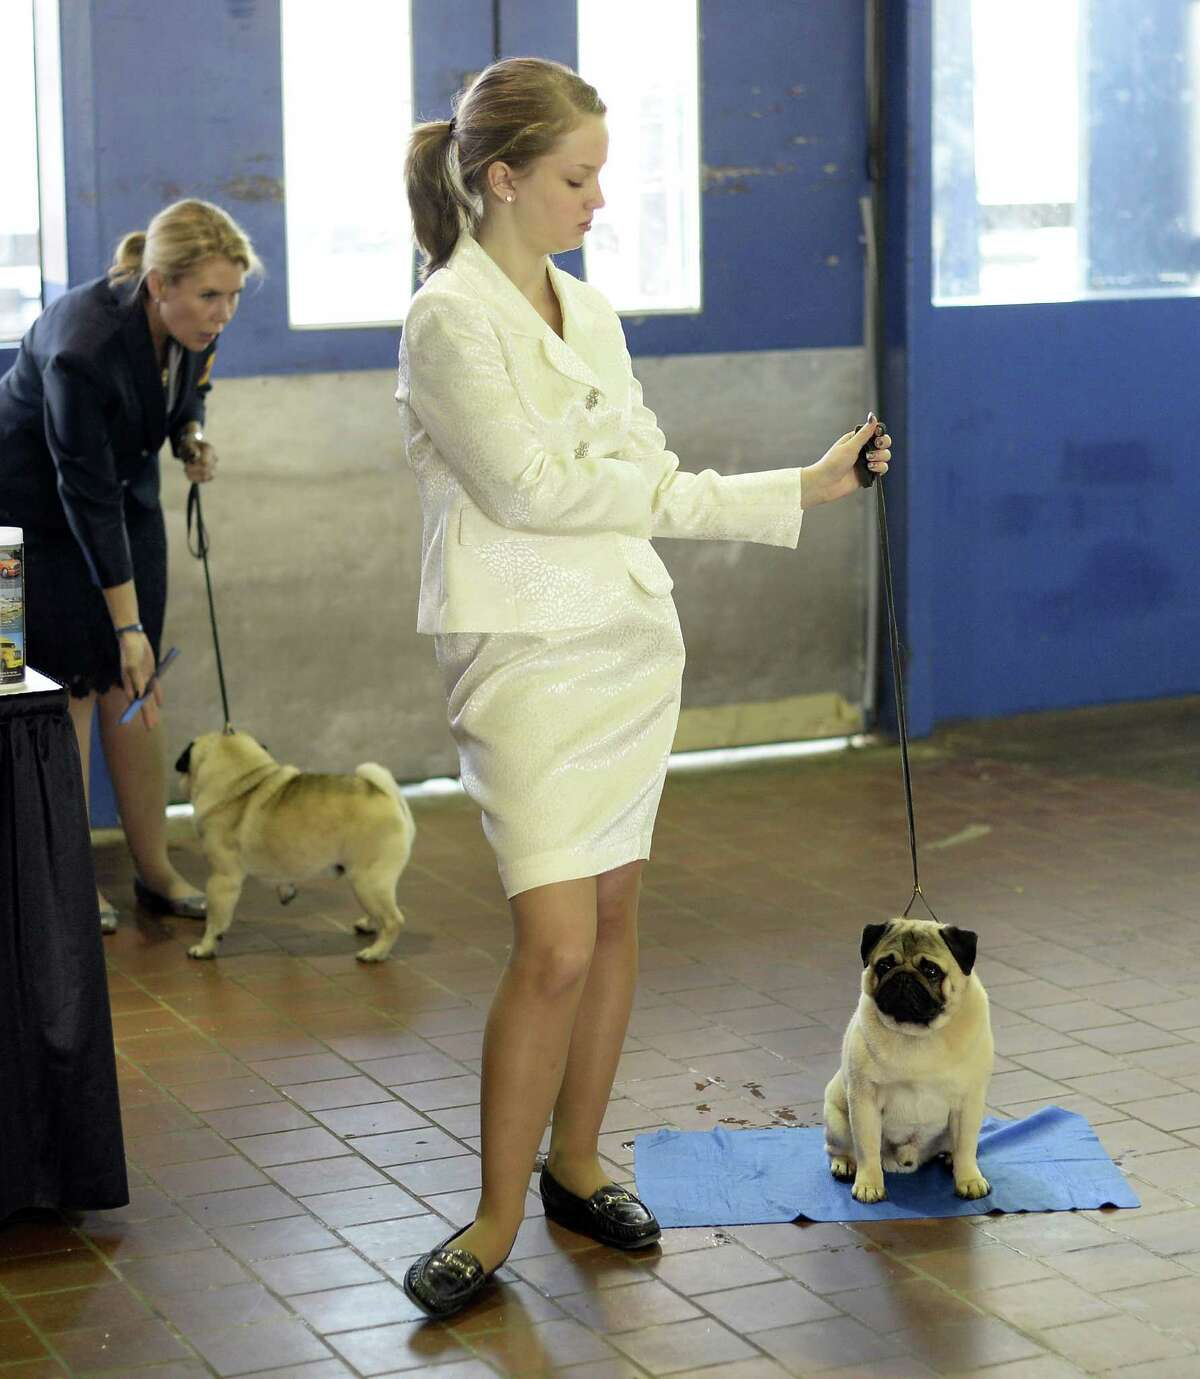 A handler waits with her Pug for judging to start at Pier 92 and 94 in New York City for the first day of competition at the 138th Annual Westminster Kennel Club Dog Show February 10, 2014. The Westminster Kennel Club Dog Show is a two-day, all-breed benched show that takes place at both Pier 92 and 94 and at Madison Square Garden in New York City .